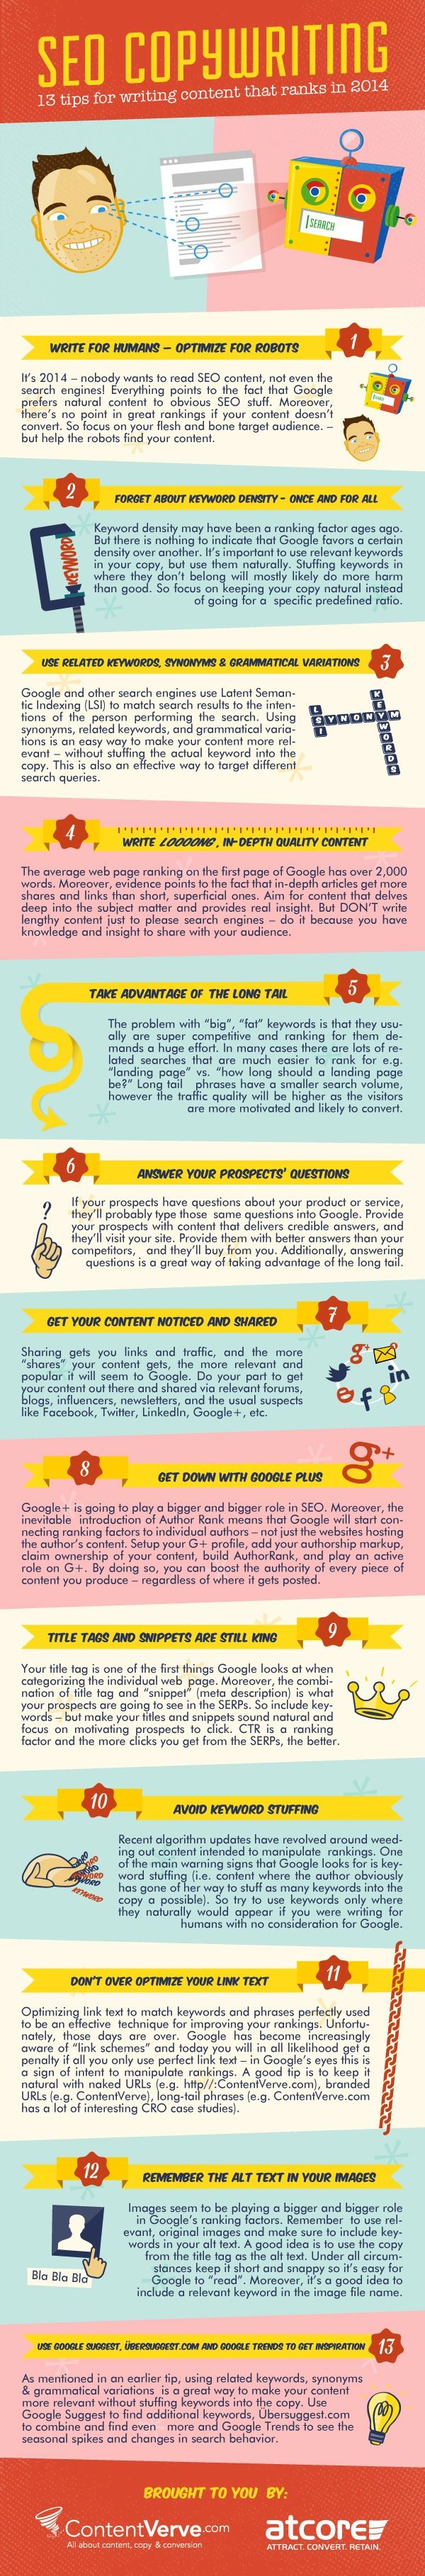 SEO-How-to-write-content-that-ranks-2014_[infographic]